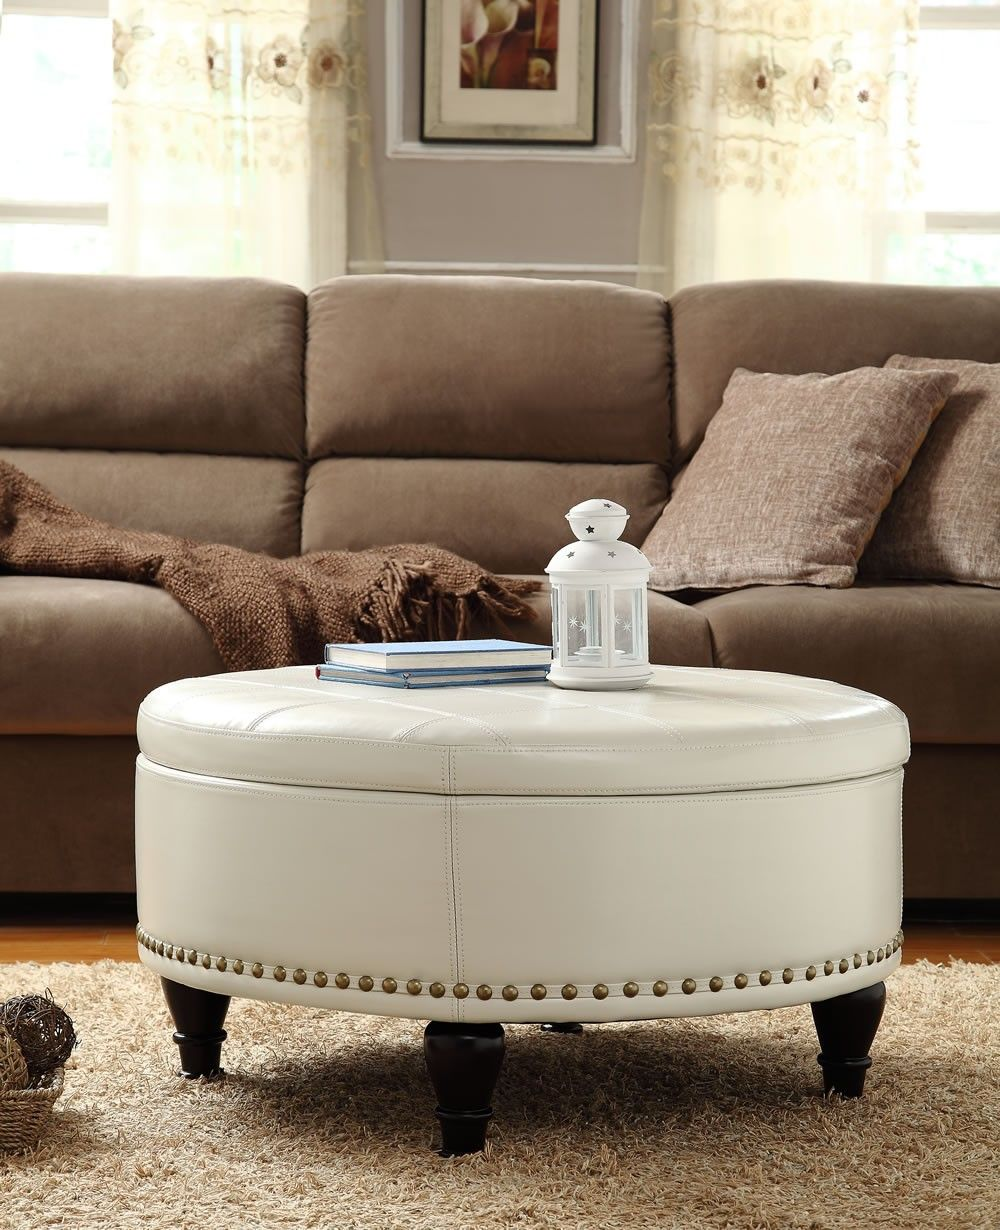 Furniture stunning beige ottoman coffee table rectangular shape furniture stunning beige ottoman coffee table rectangular shape specially design have flat part side made geotapseo Choice Image